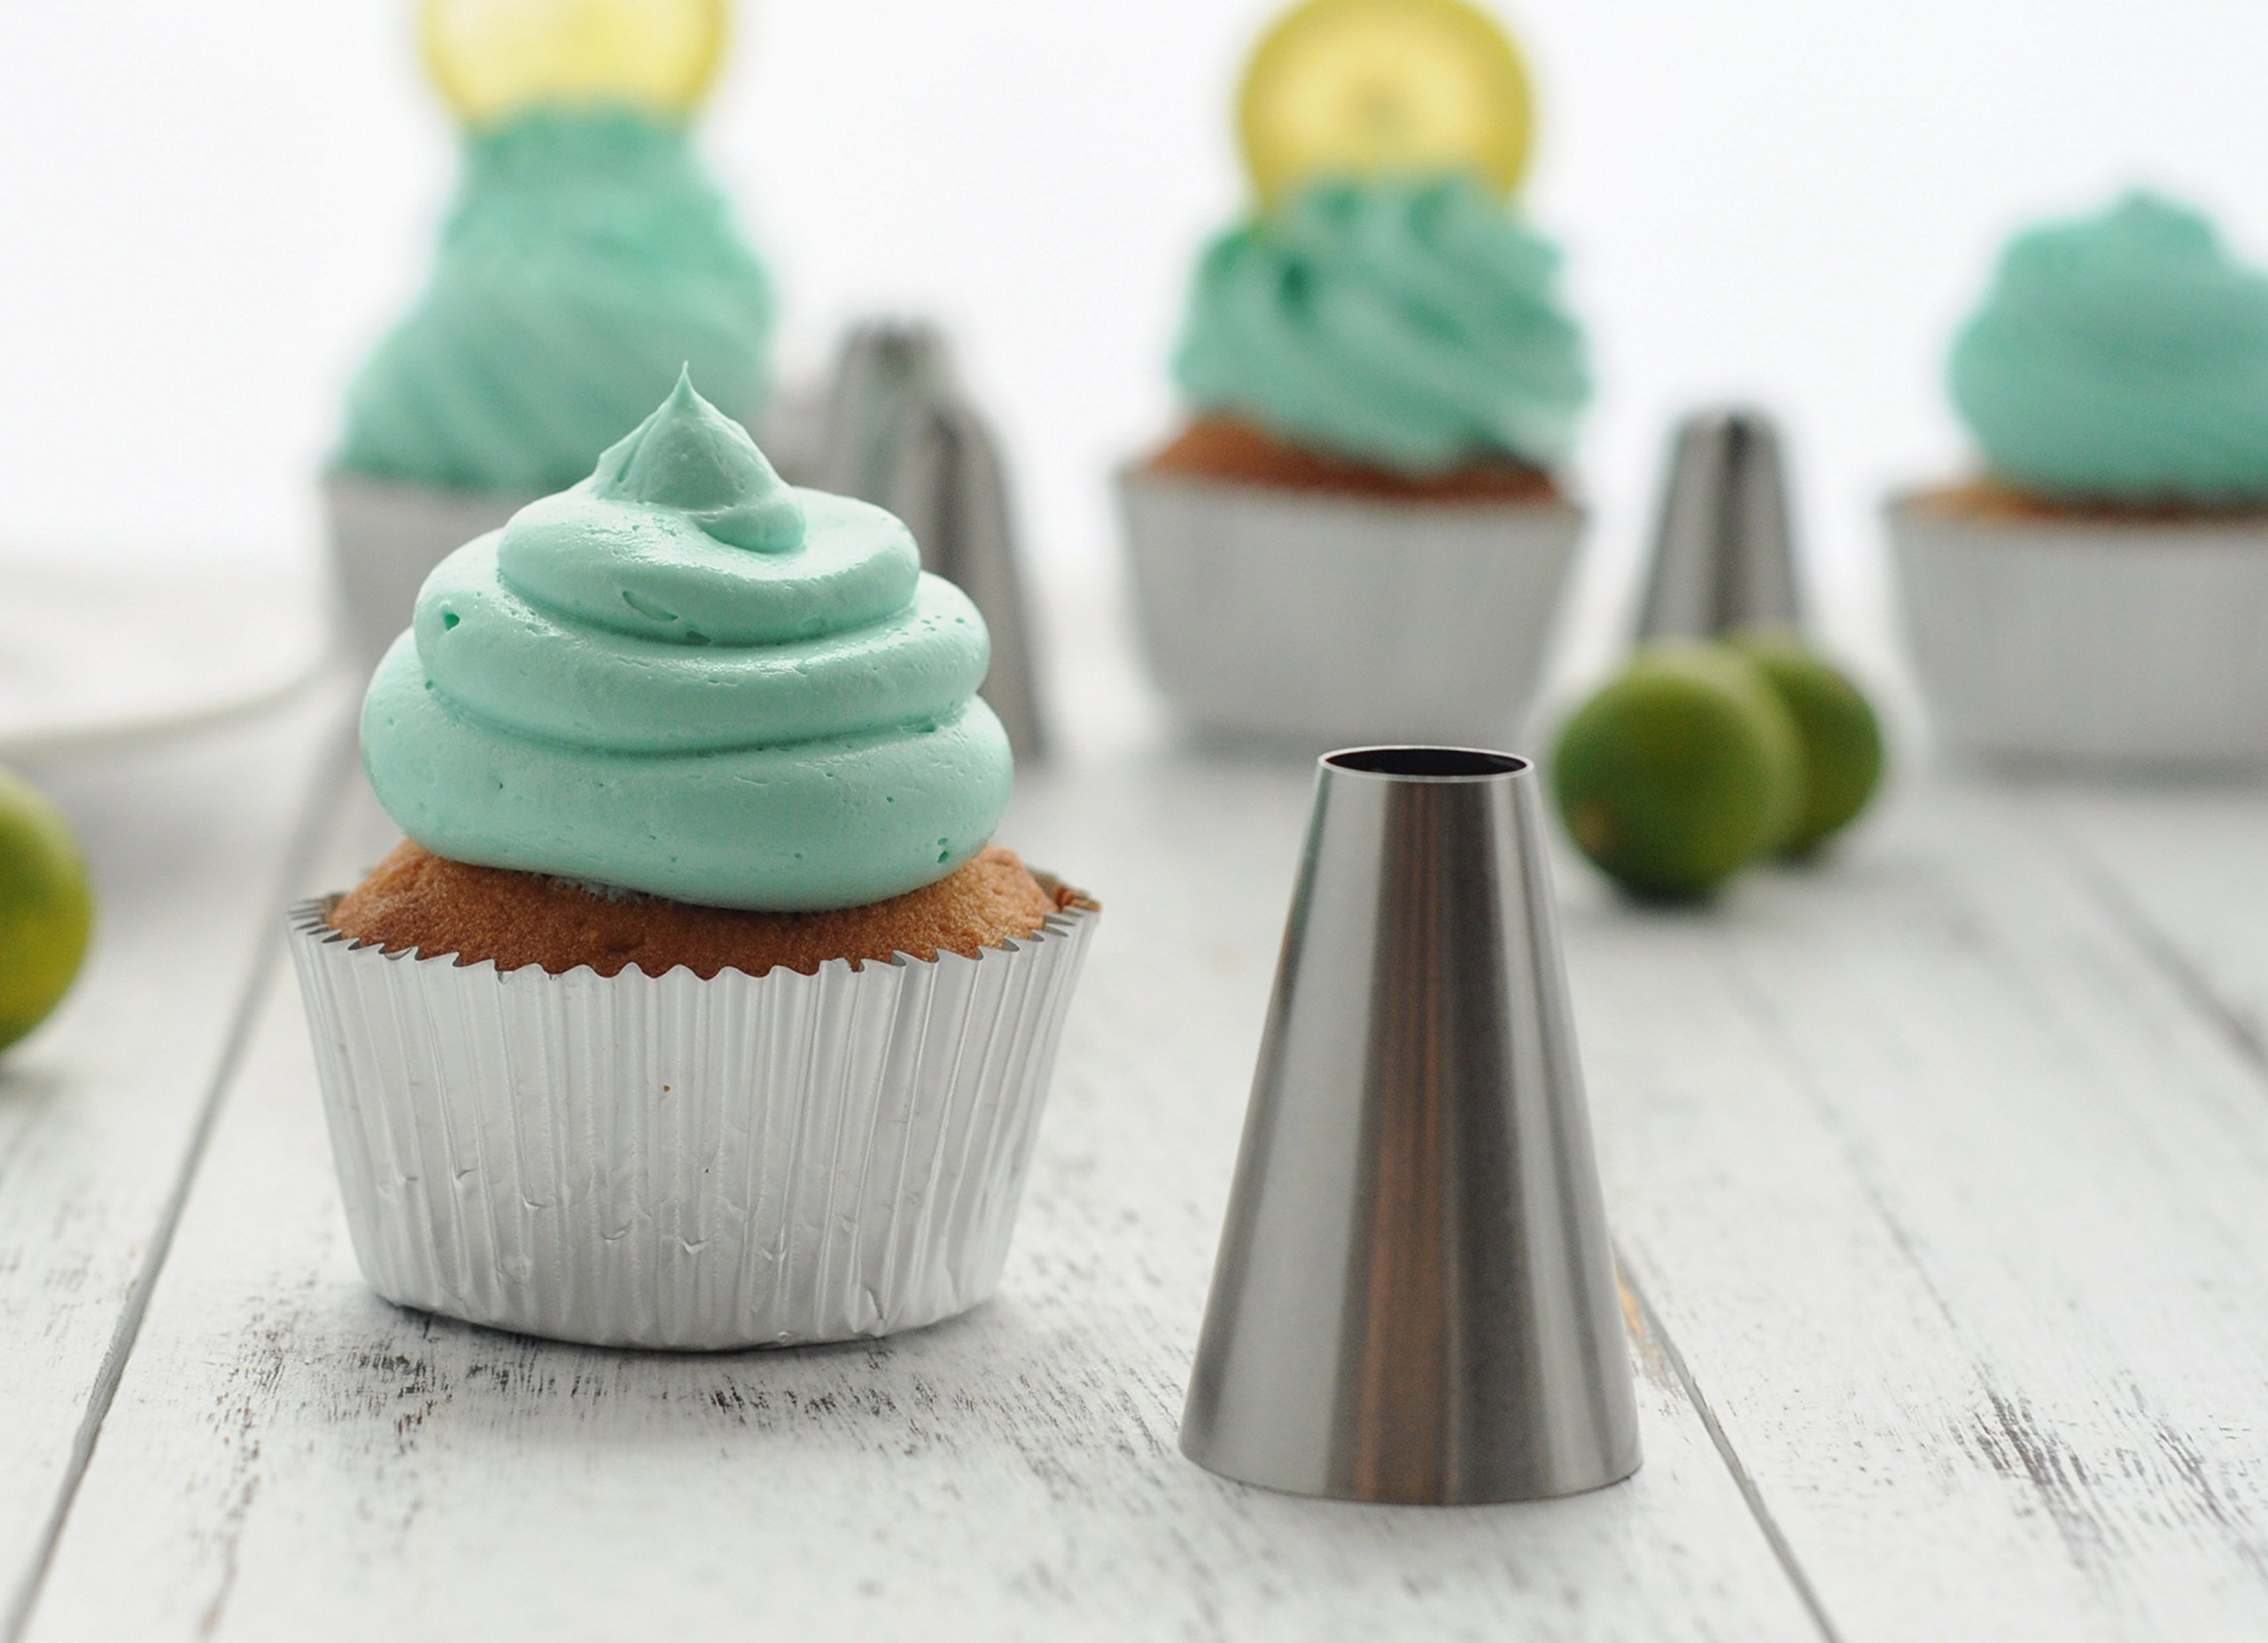 BeBeFun 304 Stainless Steel Extra-Large/Jumbo Classical Cup Cake Piping Icing Decoration Tips Set. 4 Jumbo Size + 2 Large Size In Set. by BeBeFun (Image #6)